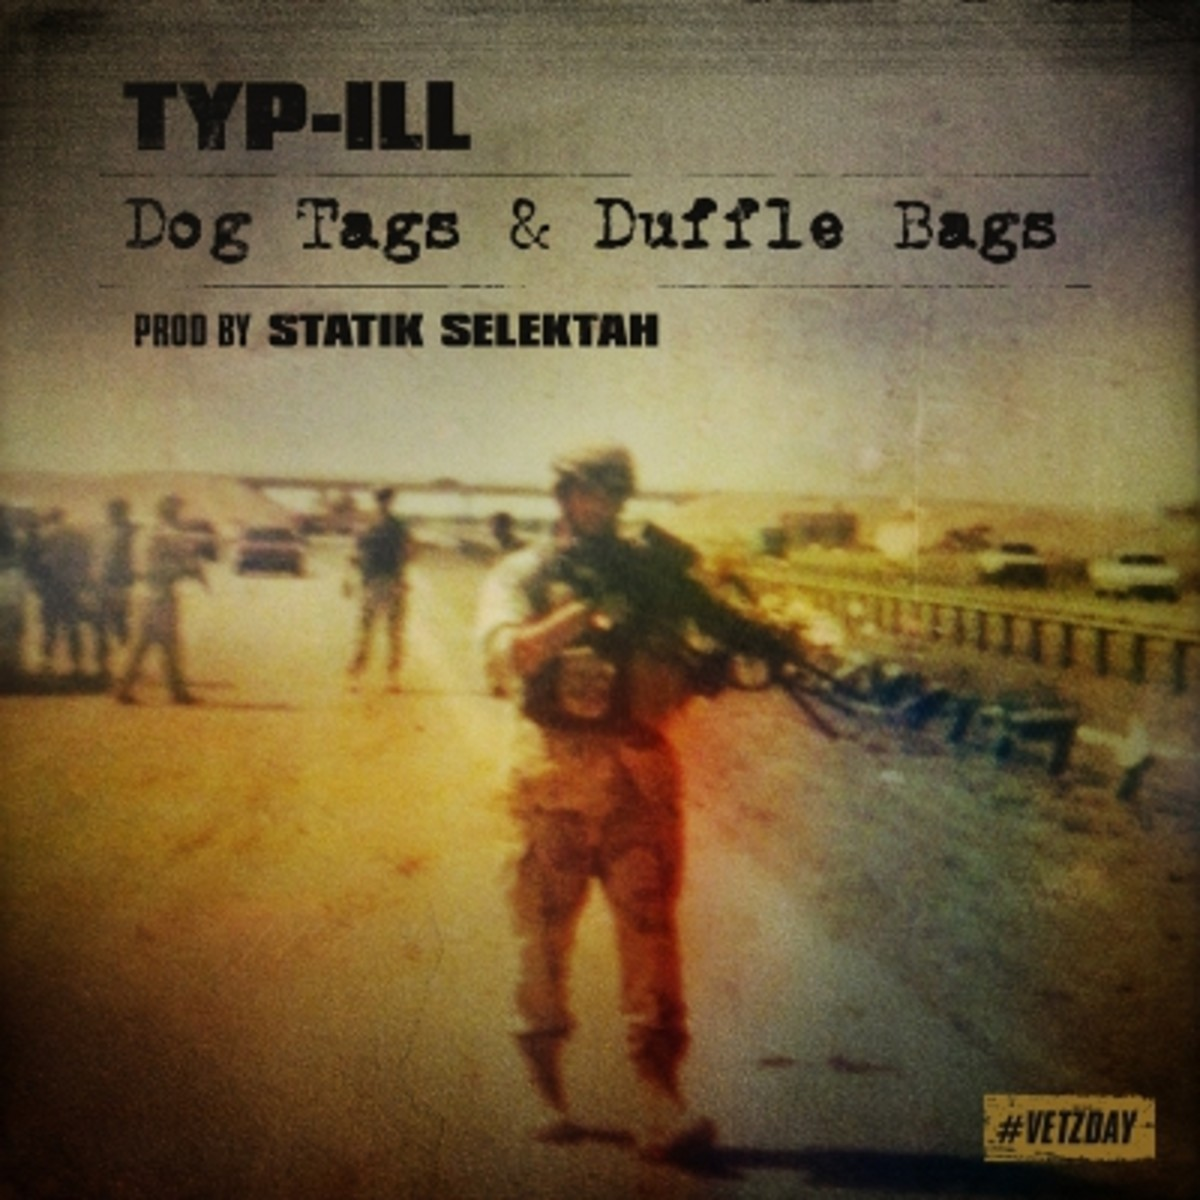 typ-ill-dog-tags-duffle-bags.jpg